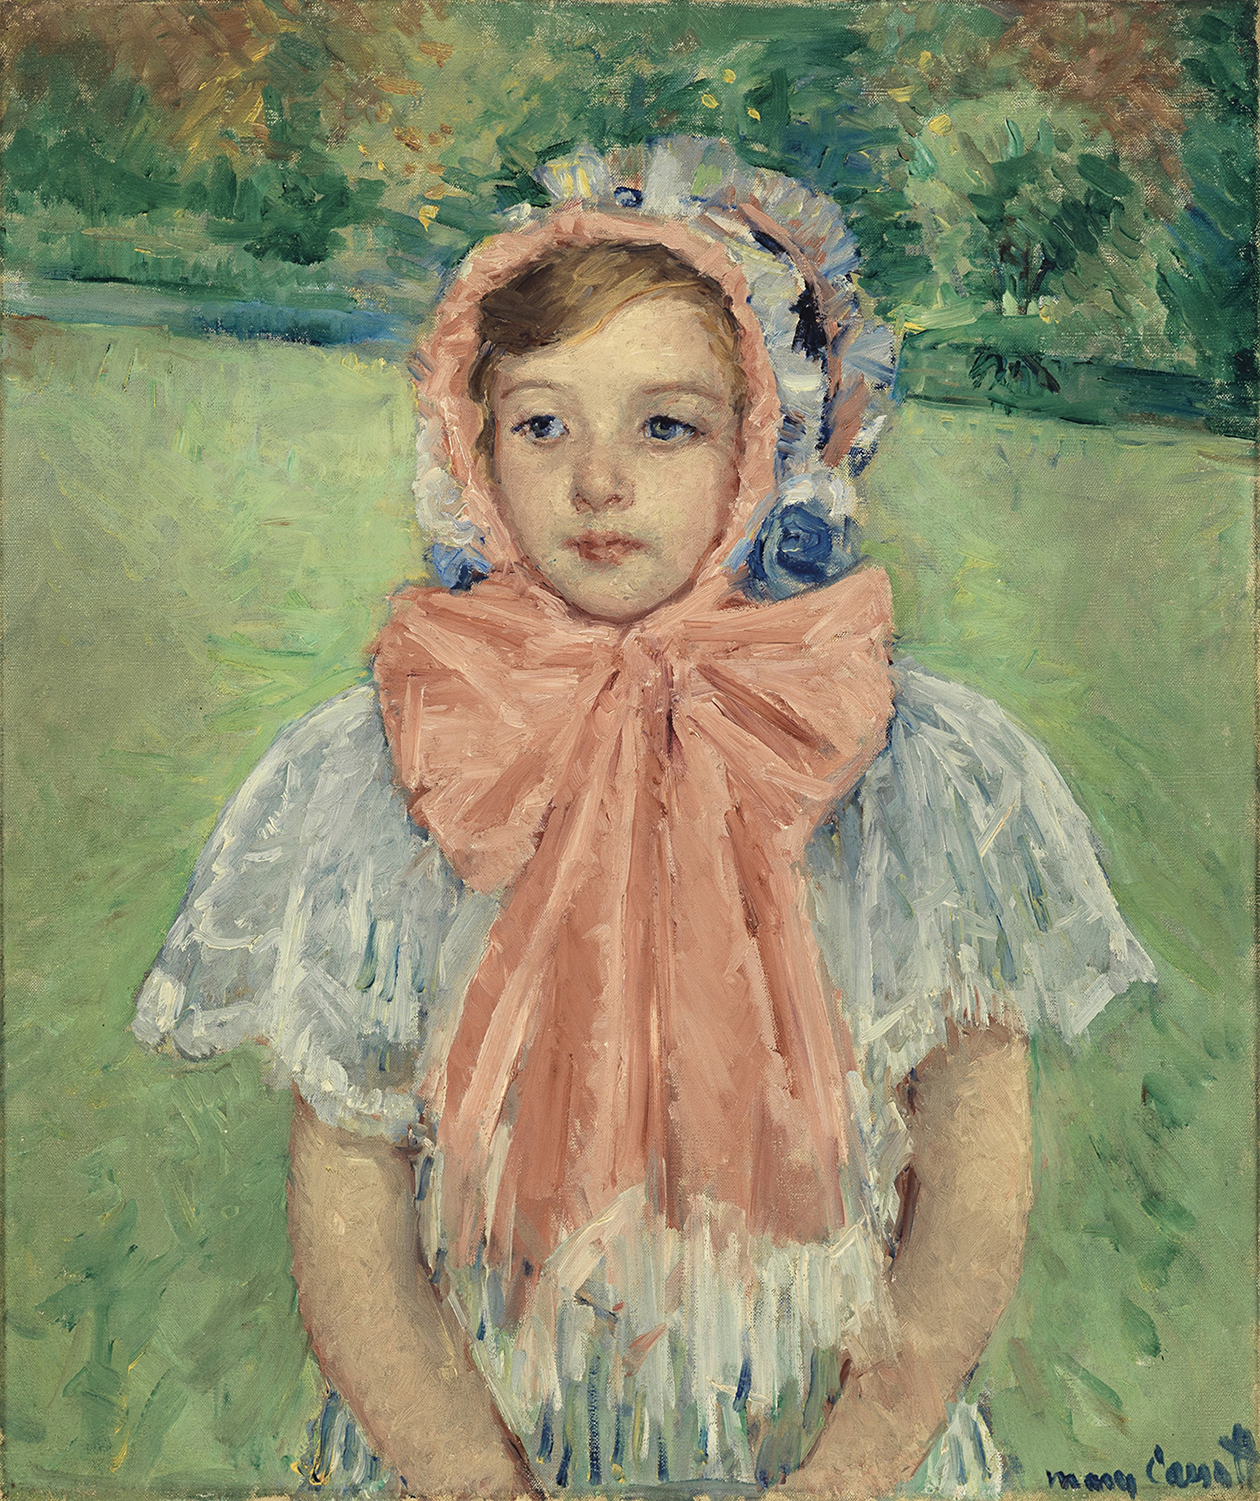 Image of young girl wearing white bonnet and large pink bow by Mary Cassatt